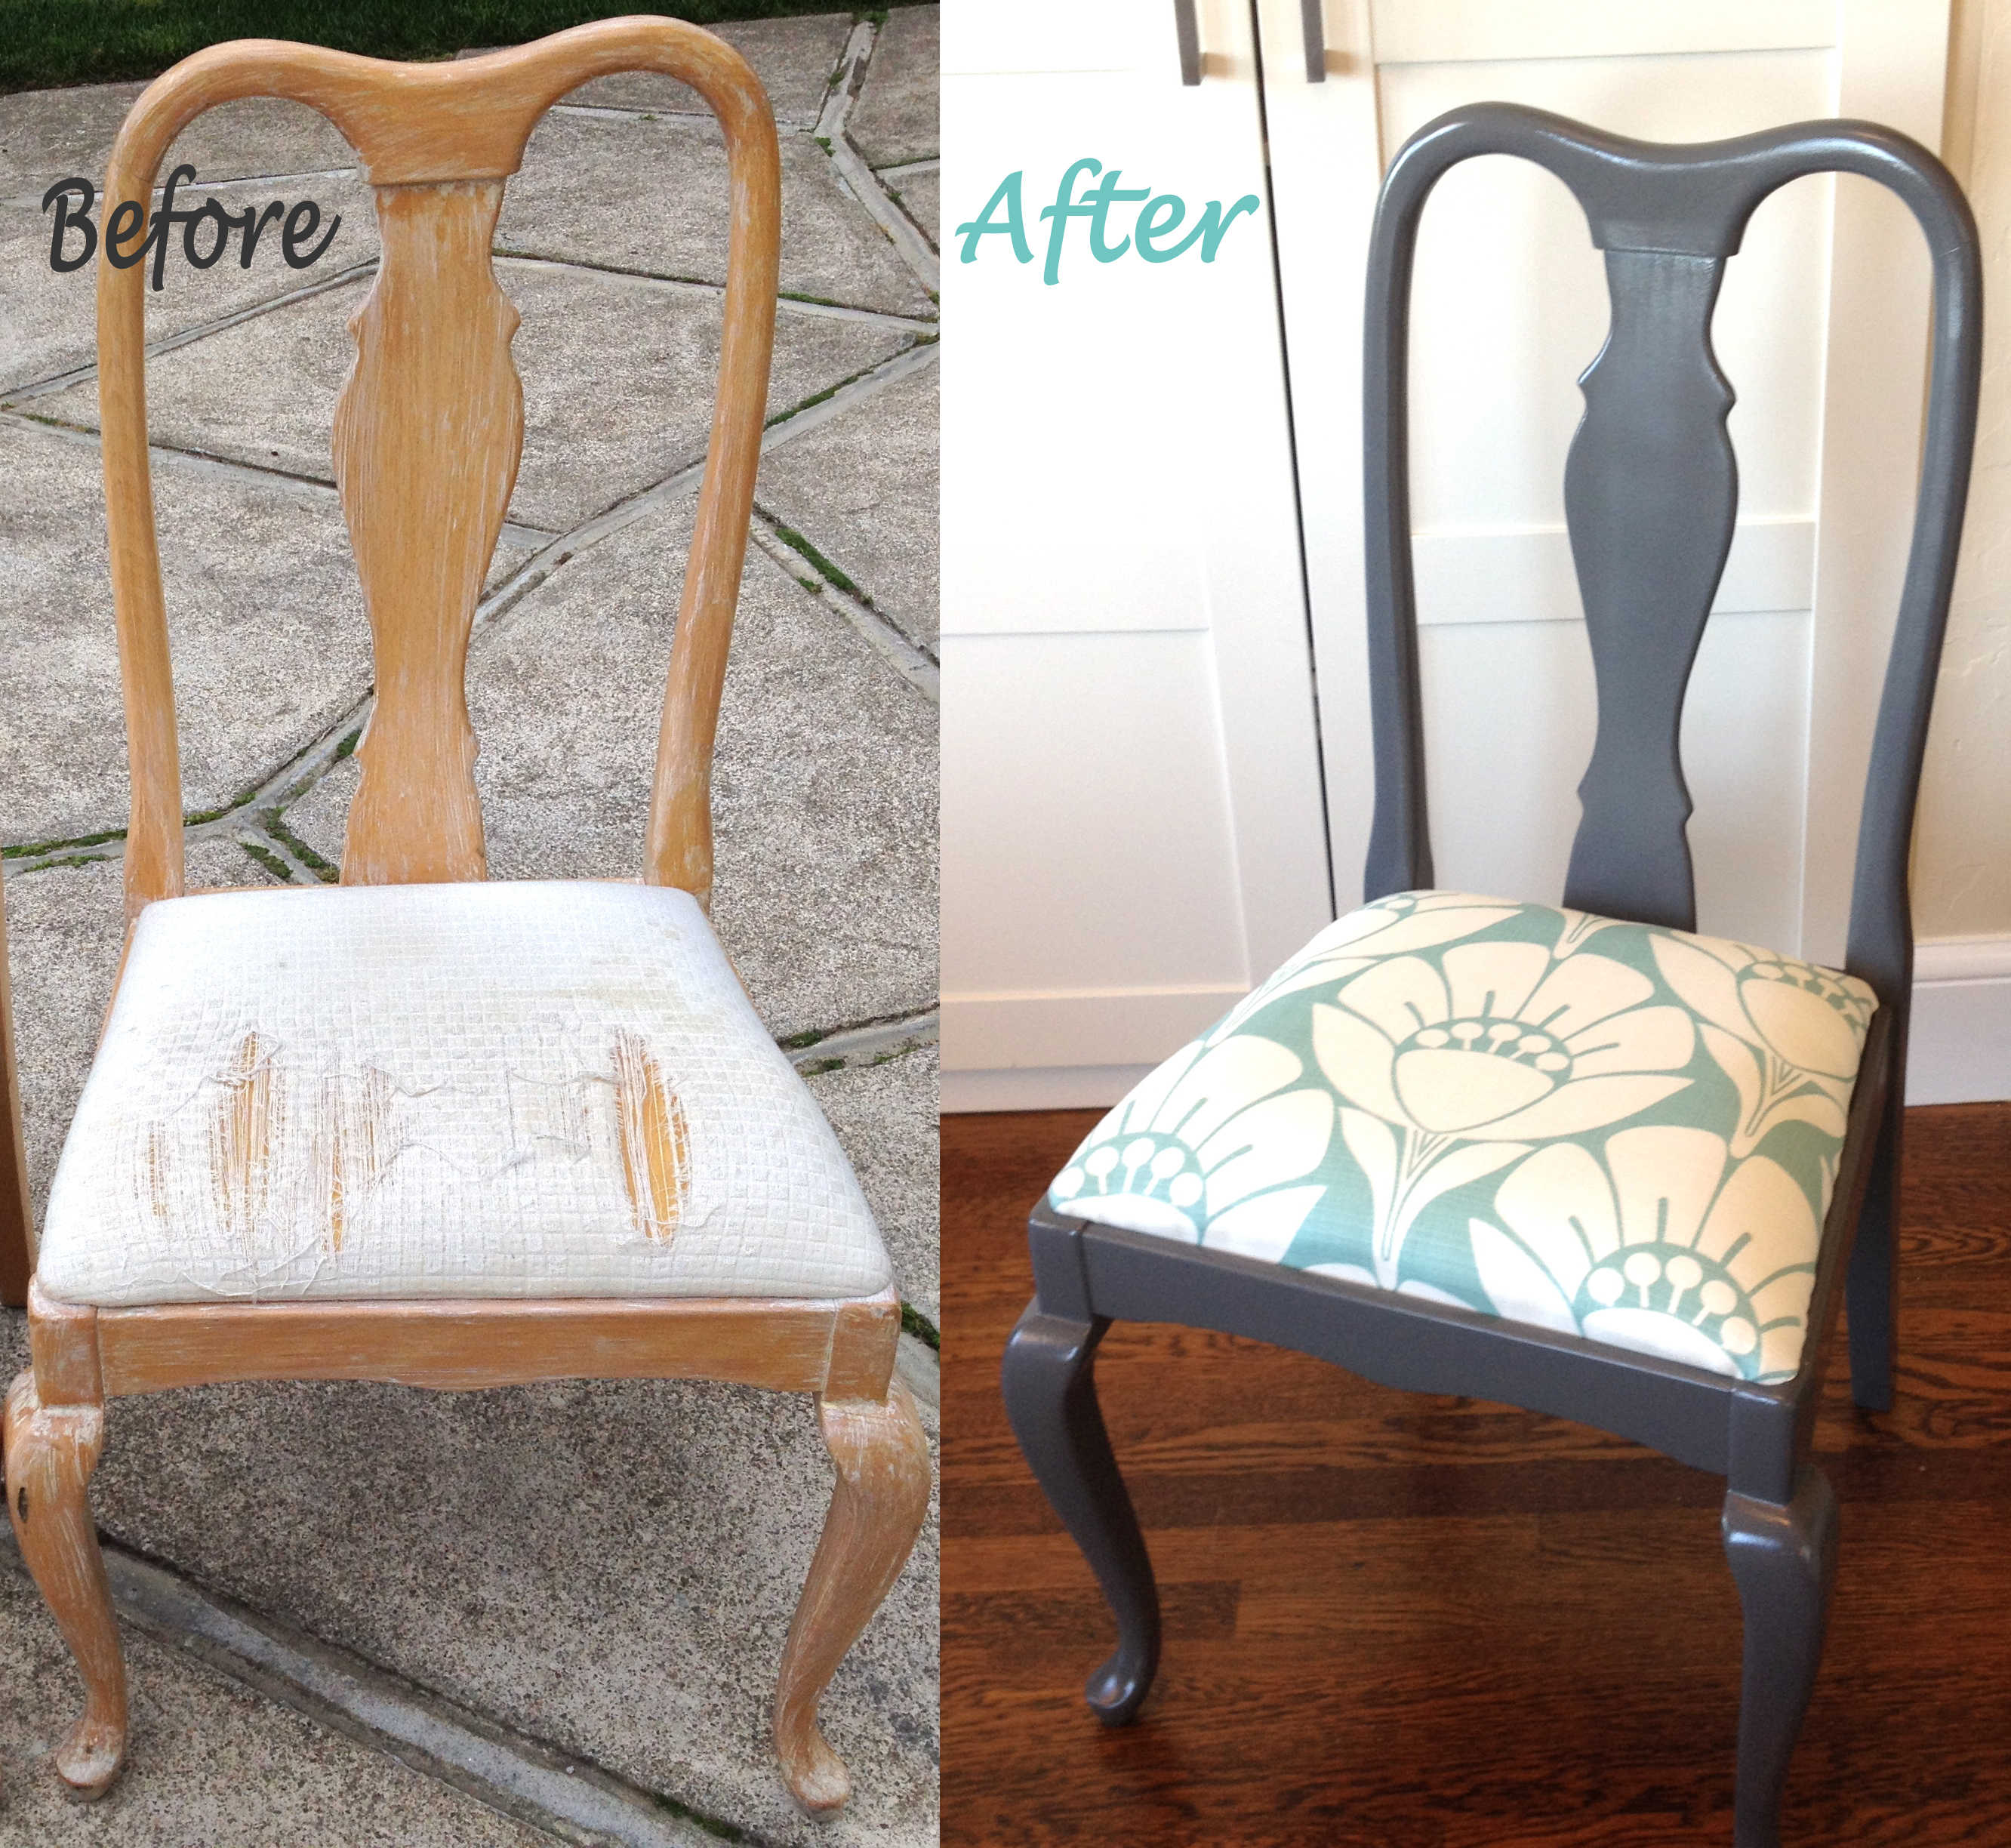 cloth chairs furniture. Queen Anne Before After Cloth Chairs Furniture E